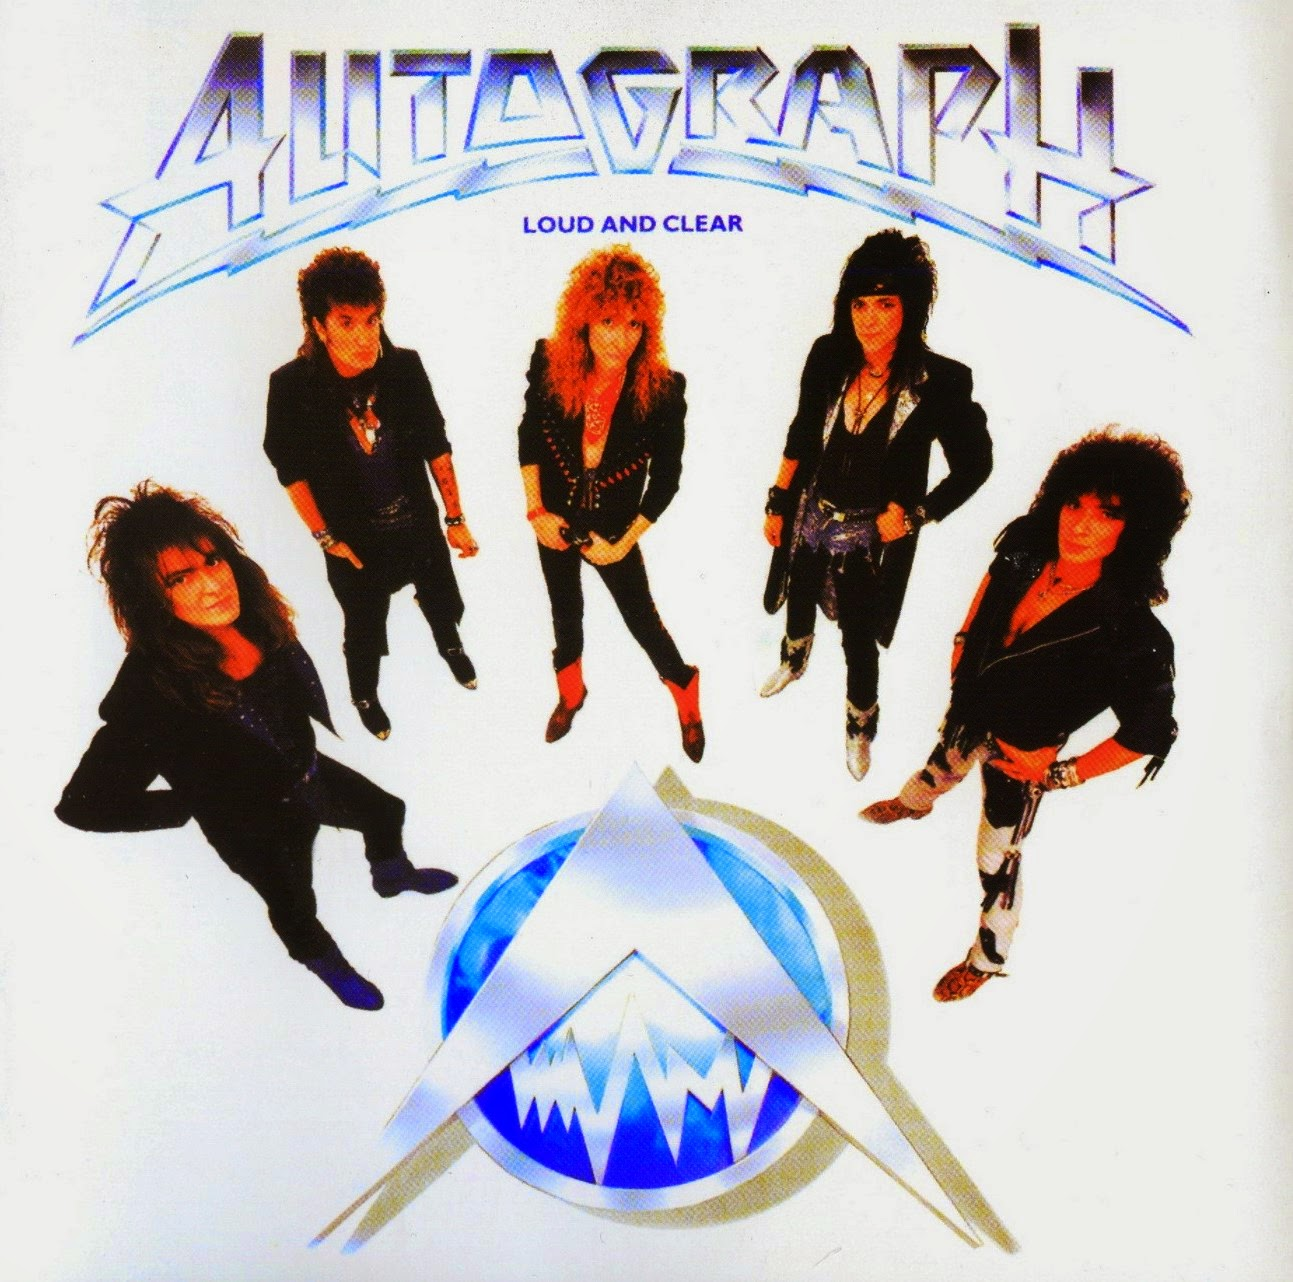 Autograph Loud and clear 1987 aor melodic rock music blogspot full albums bands